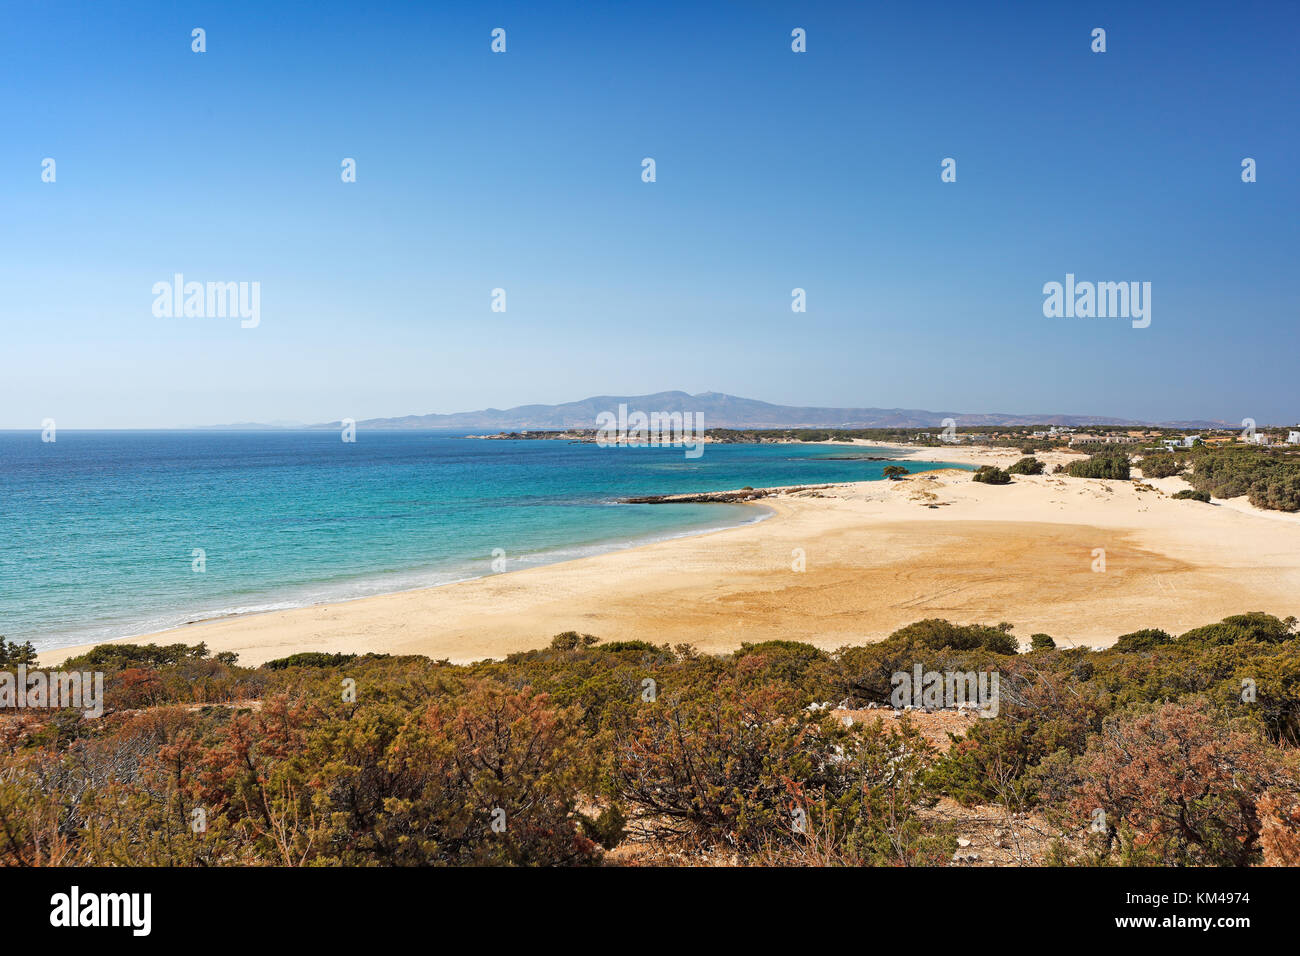 Pyrgaki beach in Naxos island, Greece - Stock Image